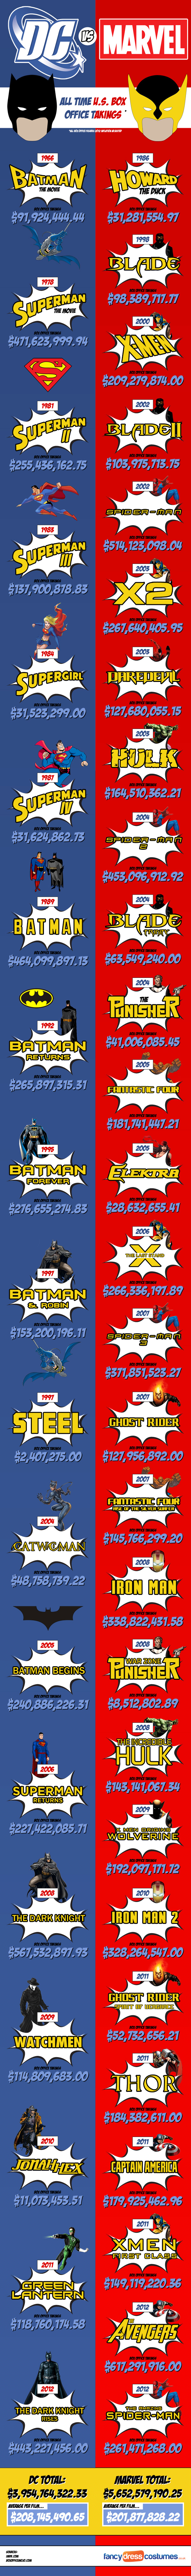 marvel-vs-dc-at-the-us-box-office_506314afb2d26